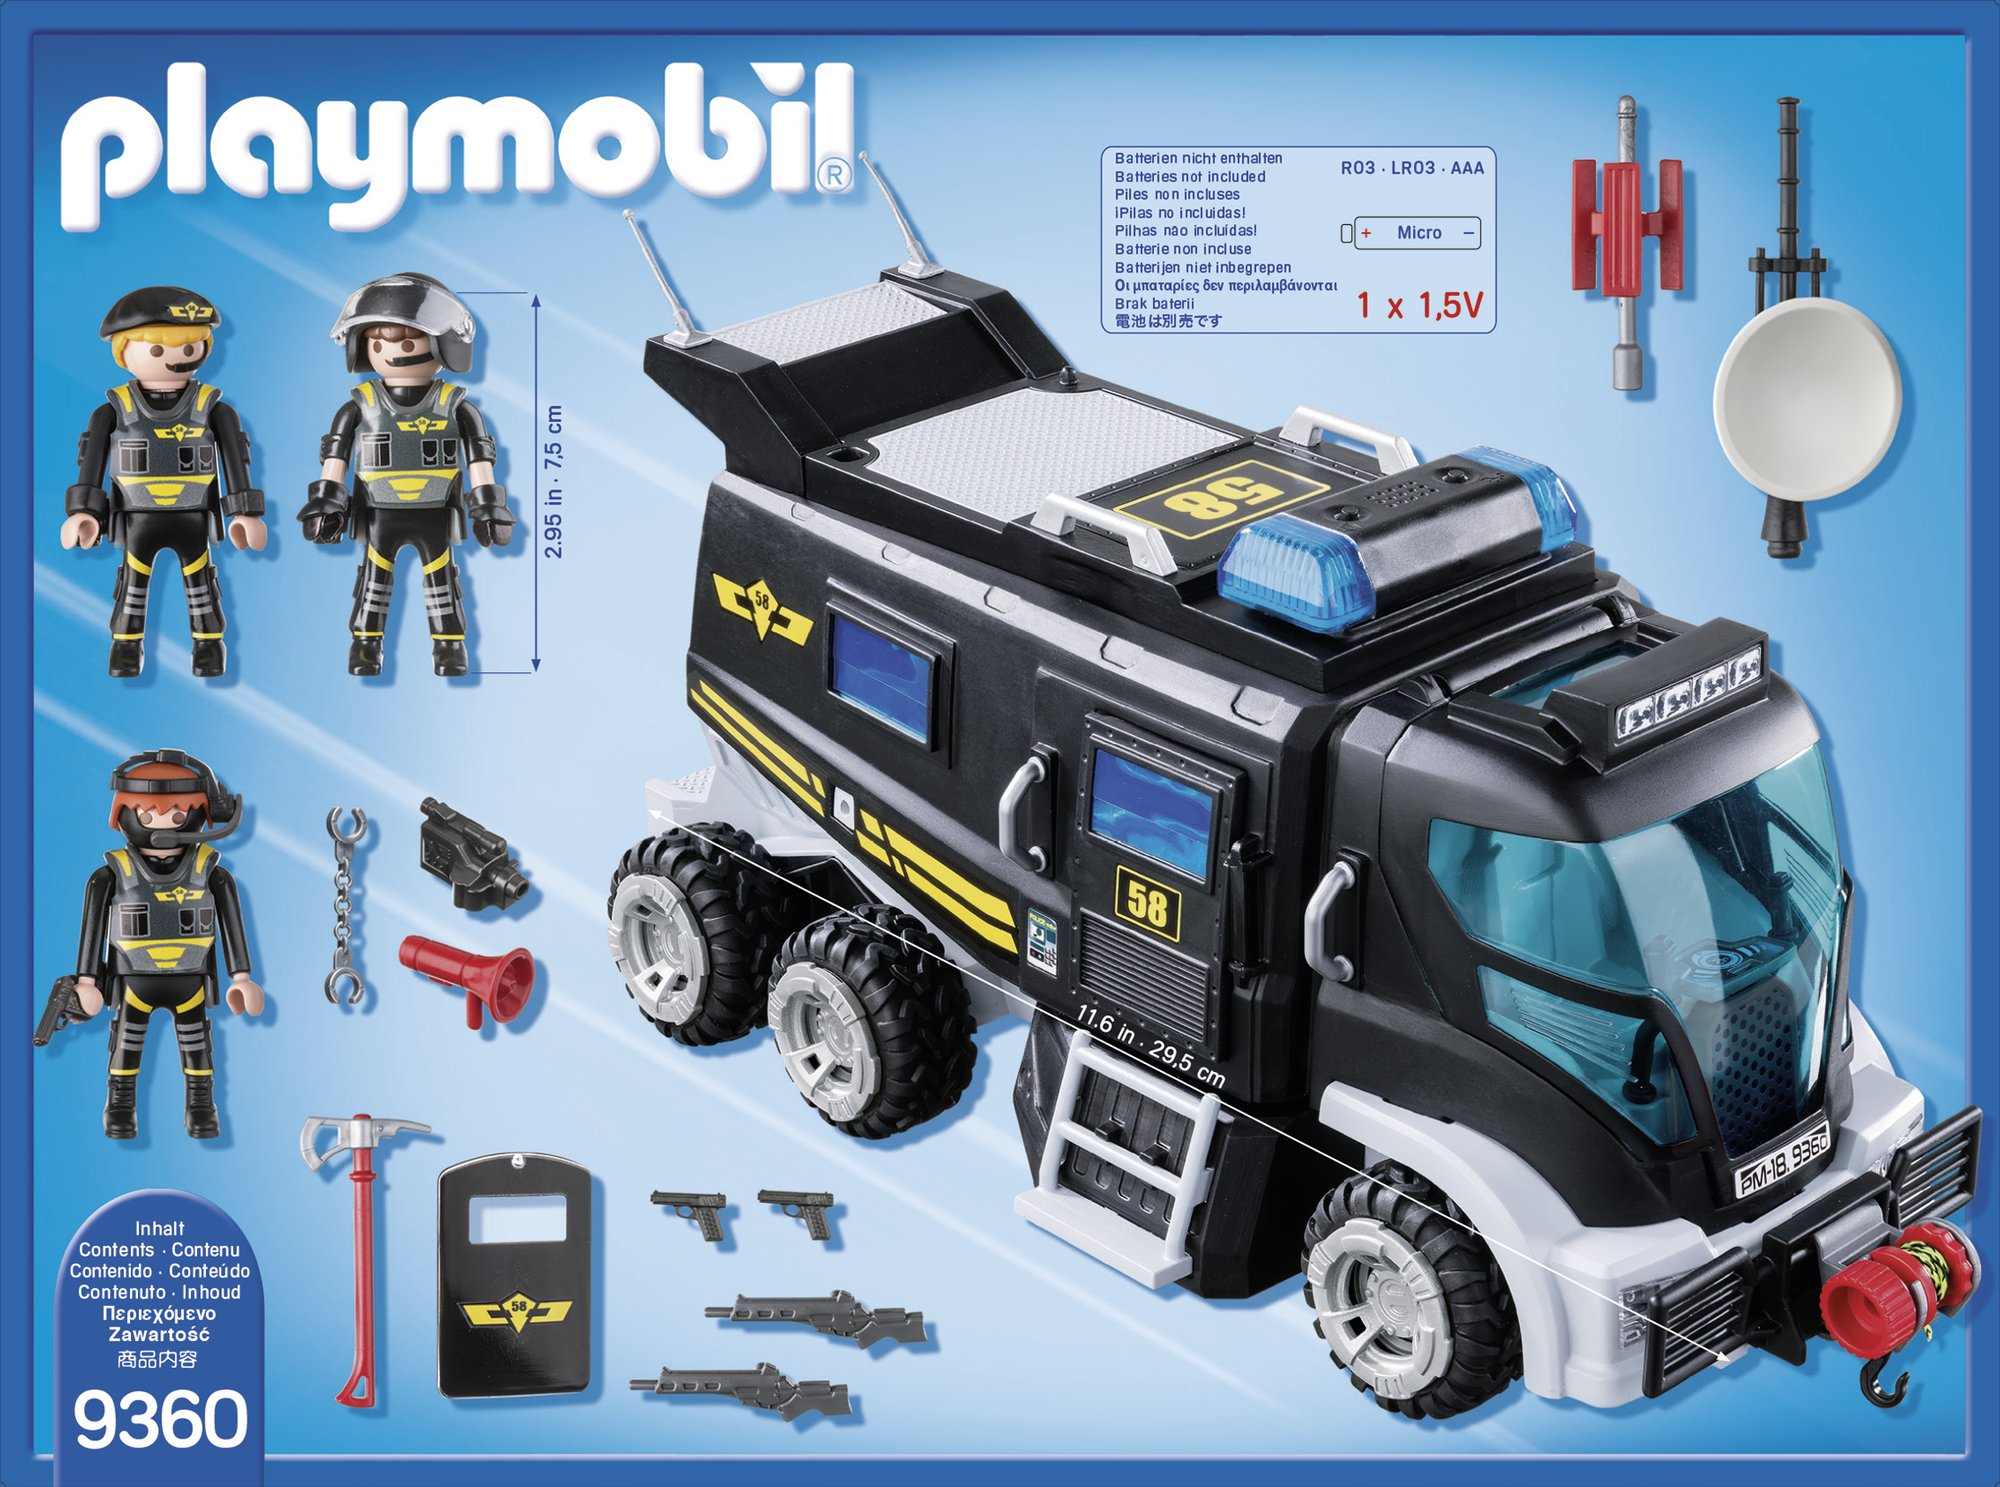 PLAYMOBIL 9360 SWAT Team truck with light and sound - NEW 2018 by PLAYMOBIL® (Image #2)